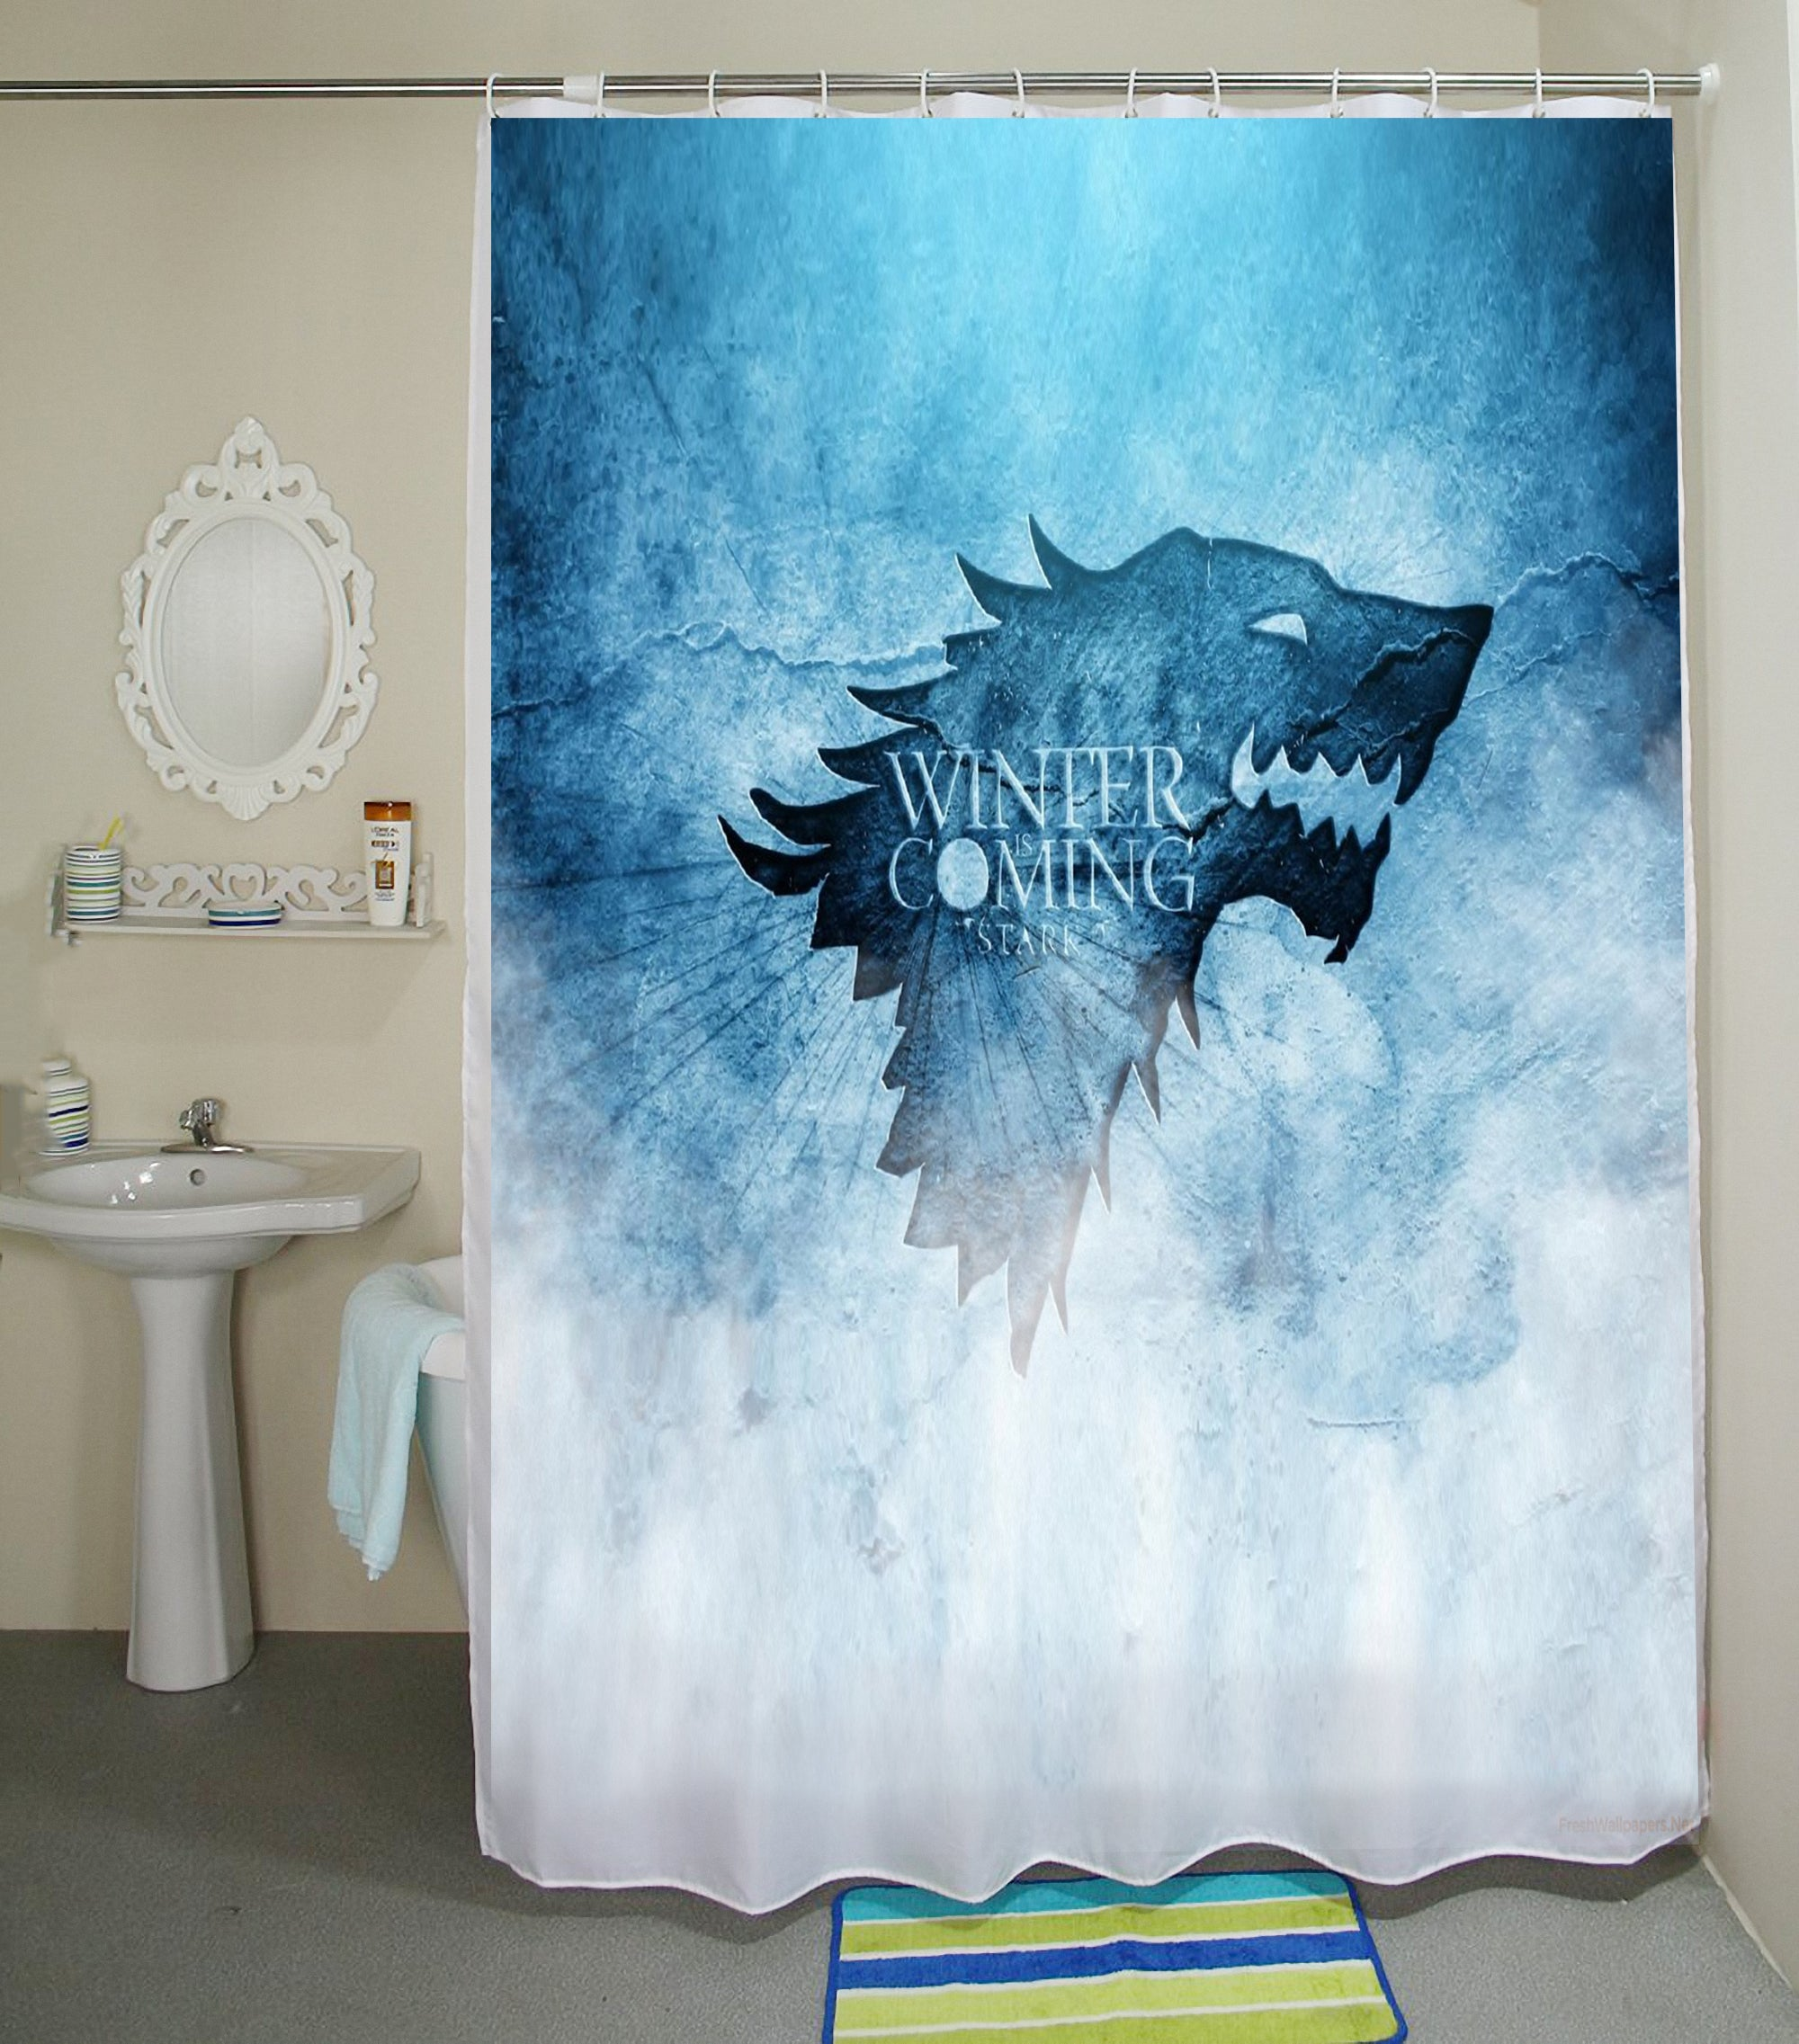 Game Of Thrones Shower Curtain Stank Winter Is Coming High Quality Waterproof Polyester Fabric